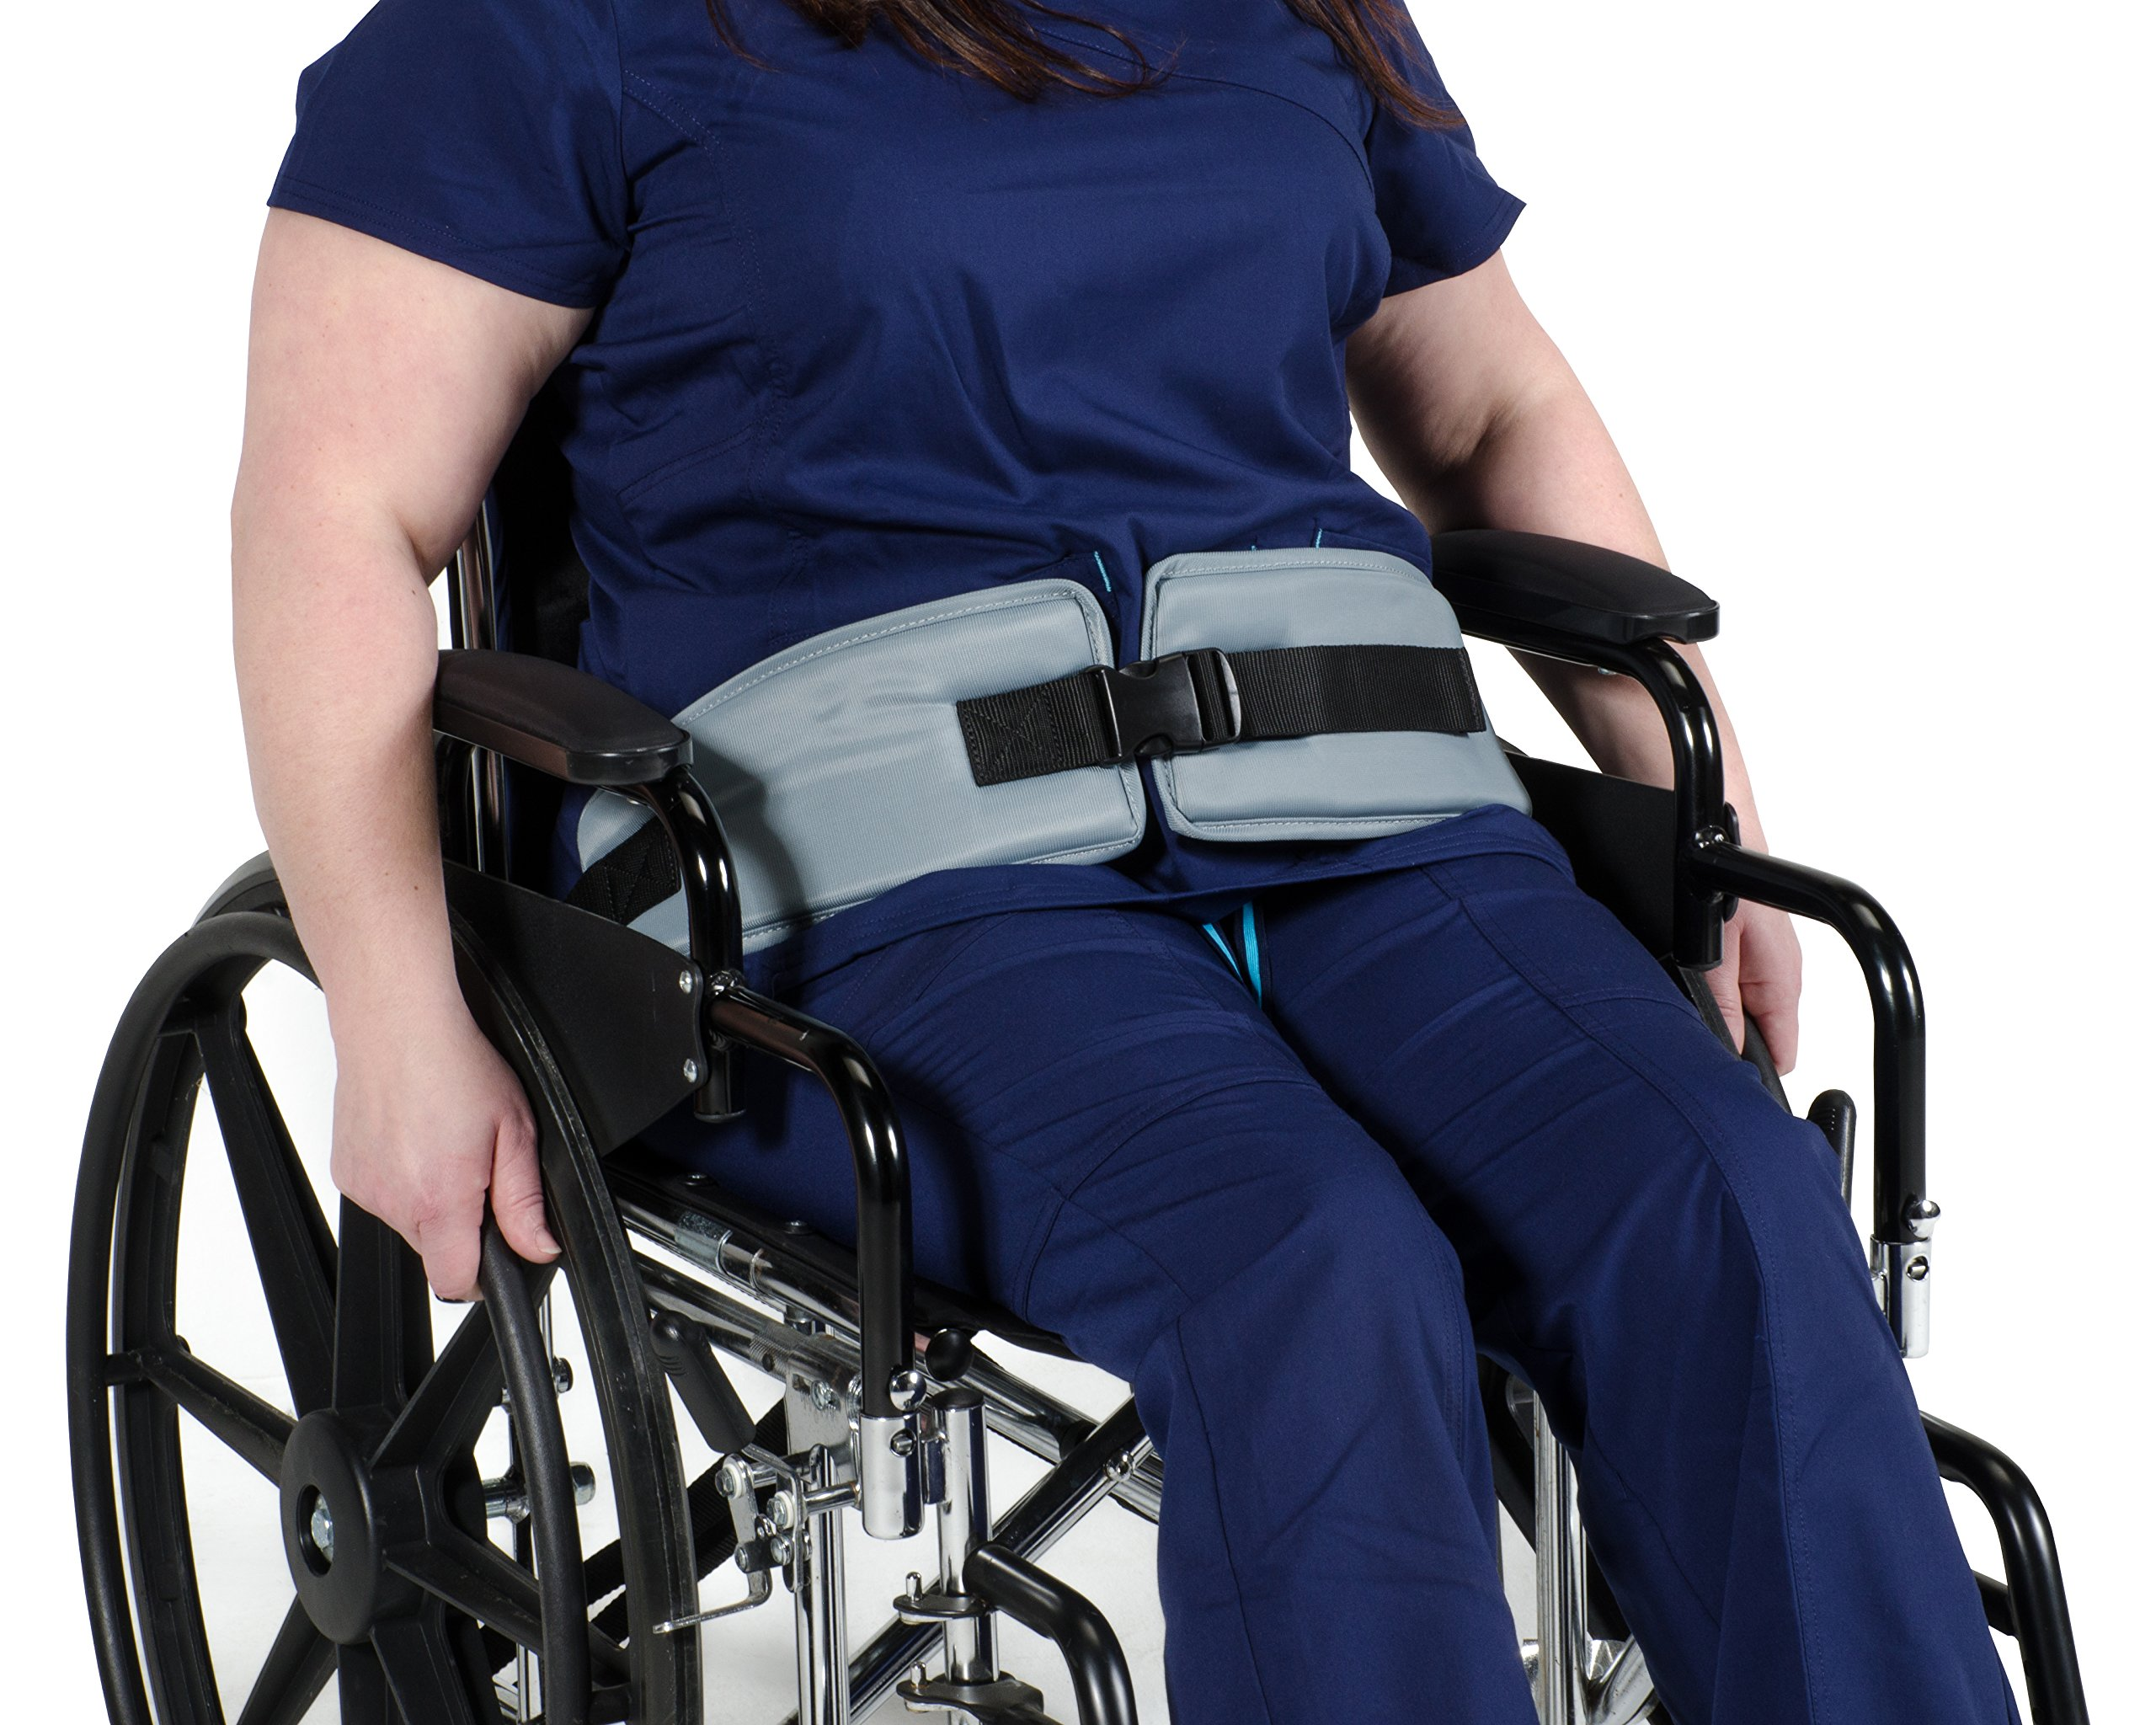 Patient Aid Padded Wheelchair Seat Belt - Adjustable Medical Safety Straps Secure Elderly, Disabled, Immobile to Prevent Sliding During Transfer, Transport – EMT Tie Downs Hospital Supplies by Patient Aid